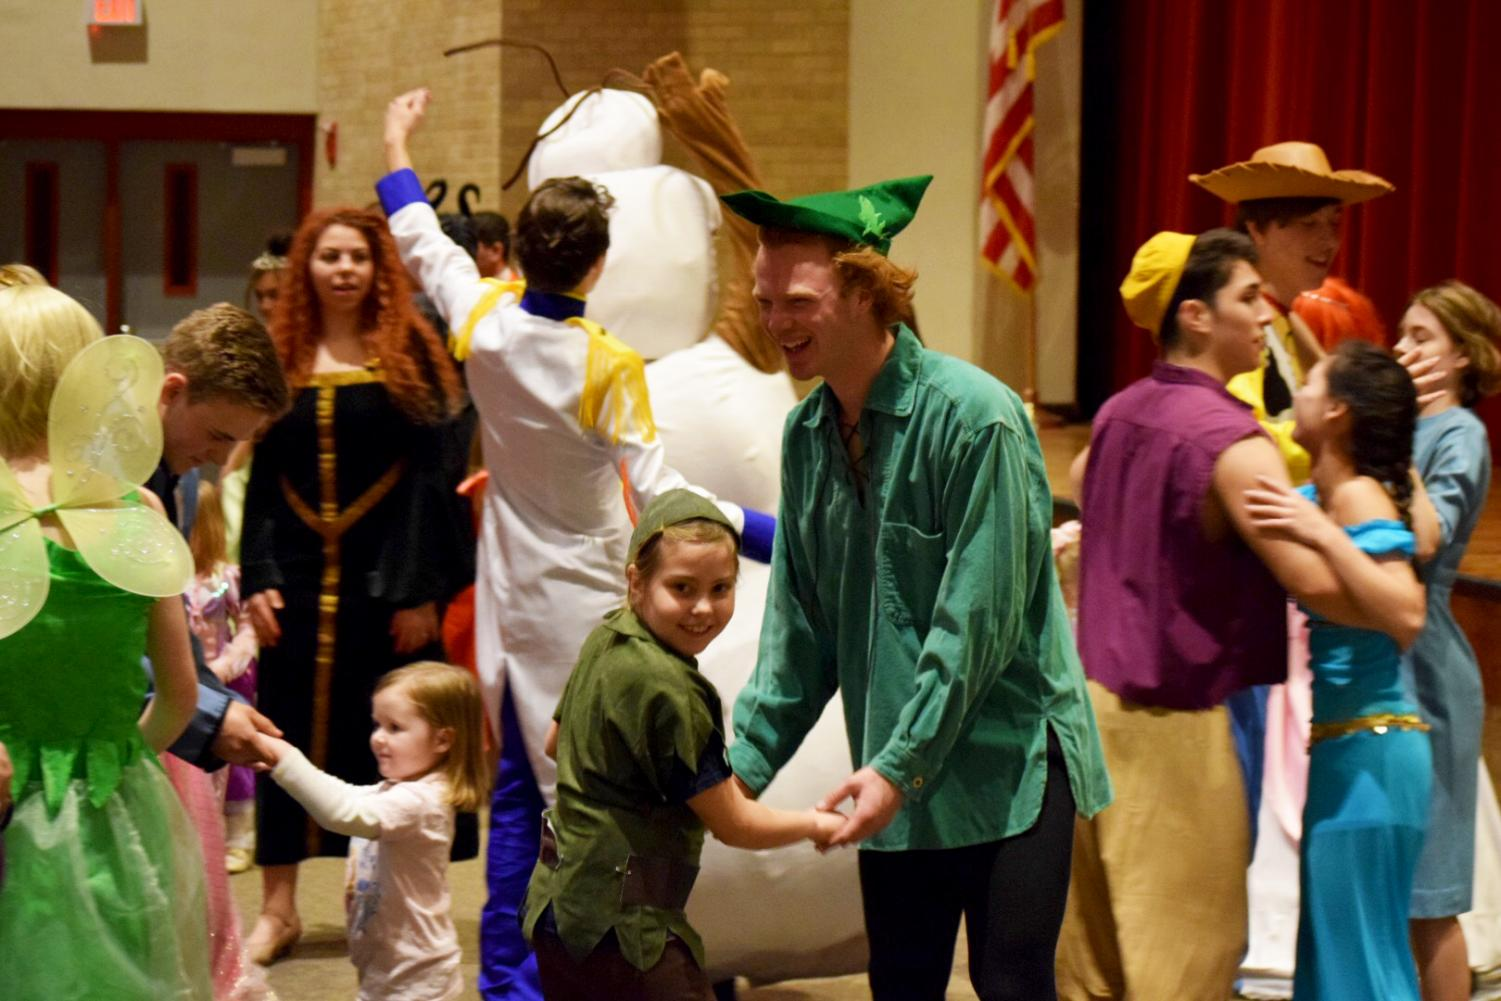 Senior Brenden Coomler waltzes with a girl that's dressed as the Disney character Peter Pan during Tea With a Princess on Sunday Feb. 4. Coomler played the role as Peter Pan as well.